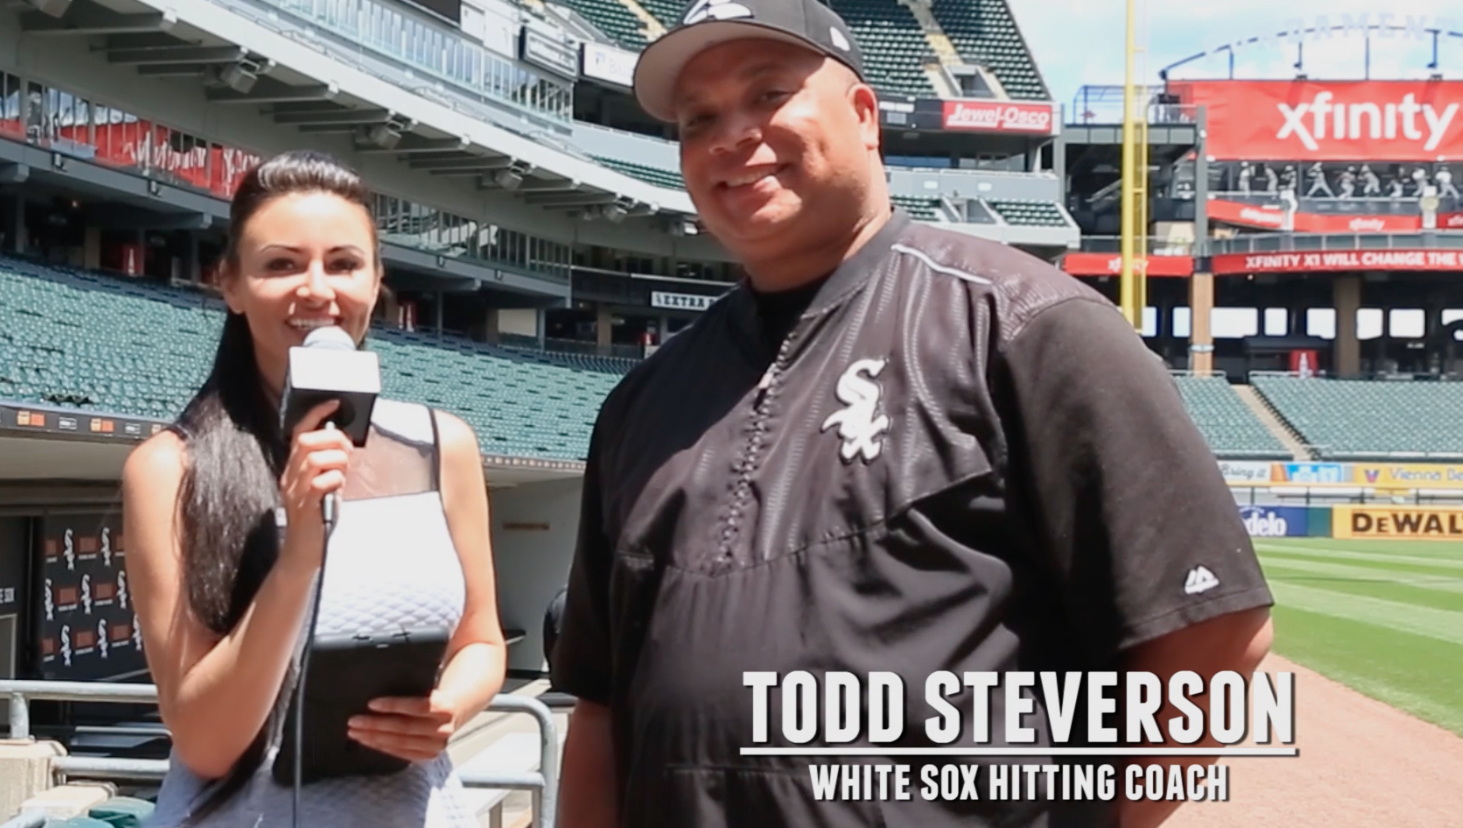 89 Seconds with 890: Todd Steverson